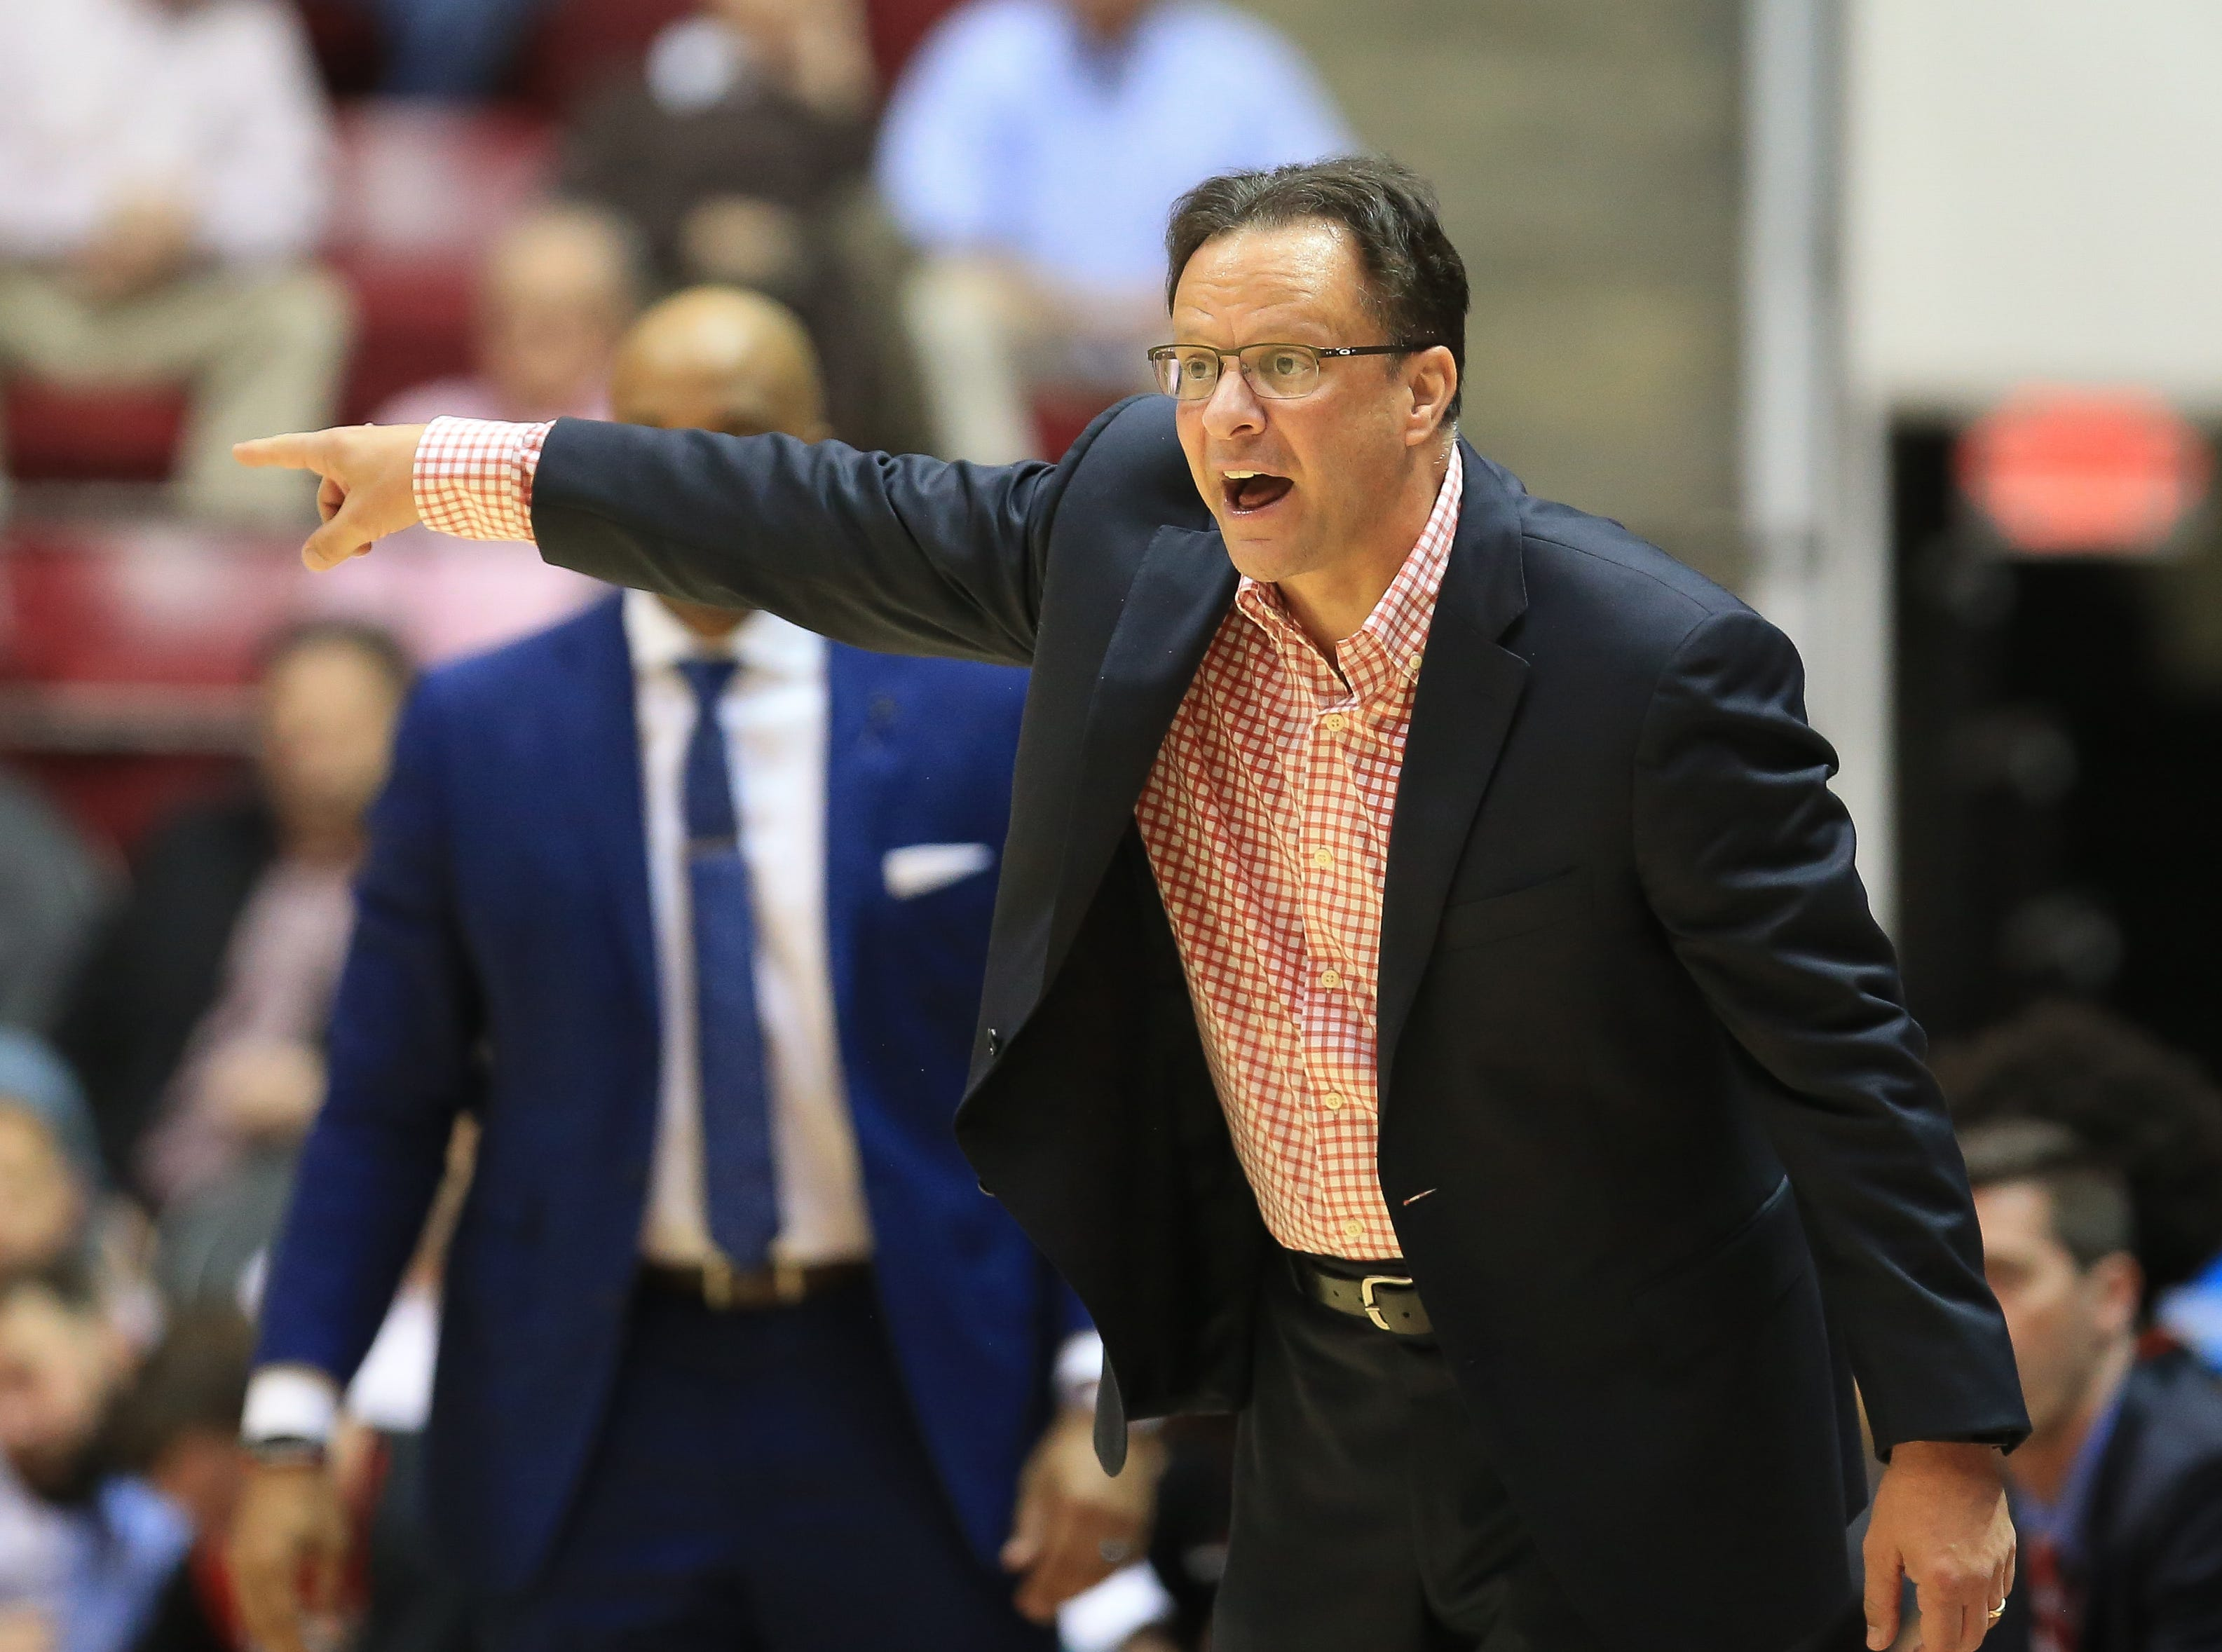 Feb 6, 2019; Tuscaloosa, AL, USA; Georgia Bulldogs head coach Tom Crean reacts to his team play during the second half against Alabama Crimson Tide at Coleman Coliseum. Mandatory Credit: Marvin Gentry-USA TODAY Sports